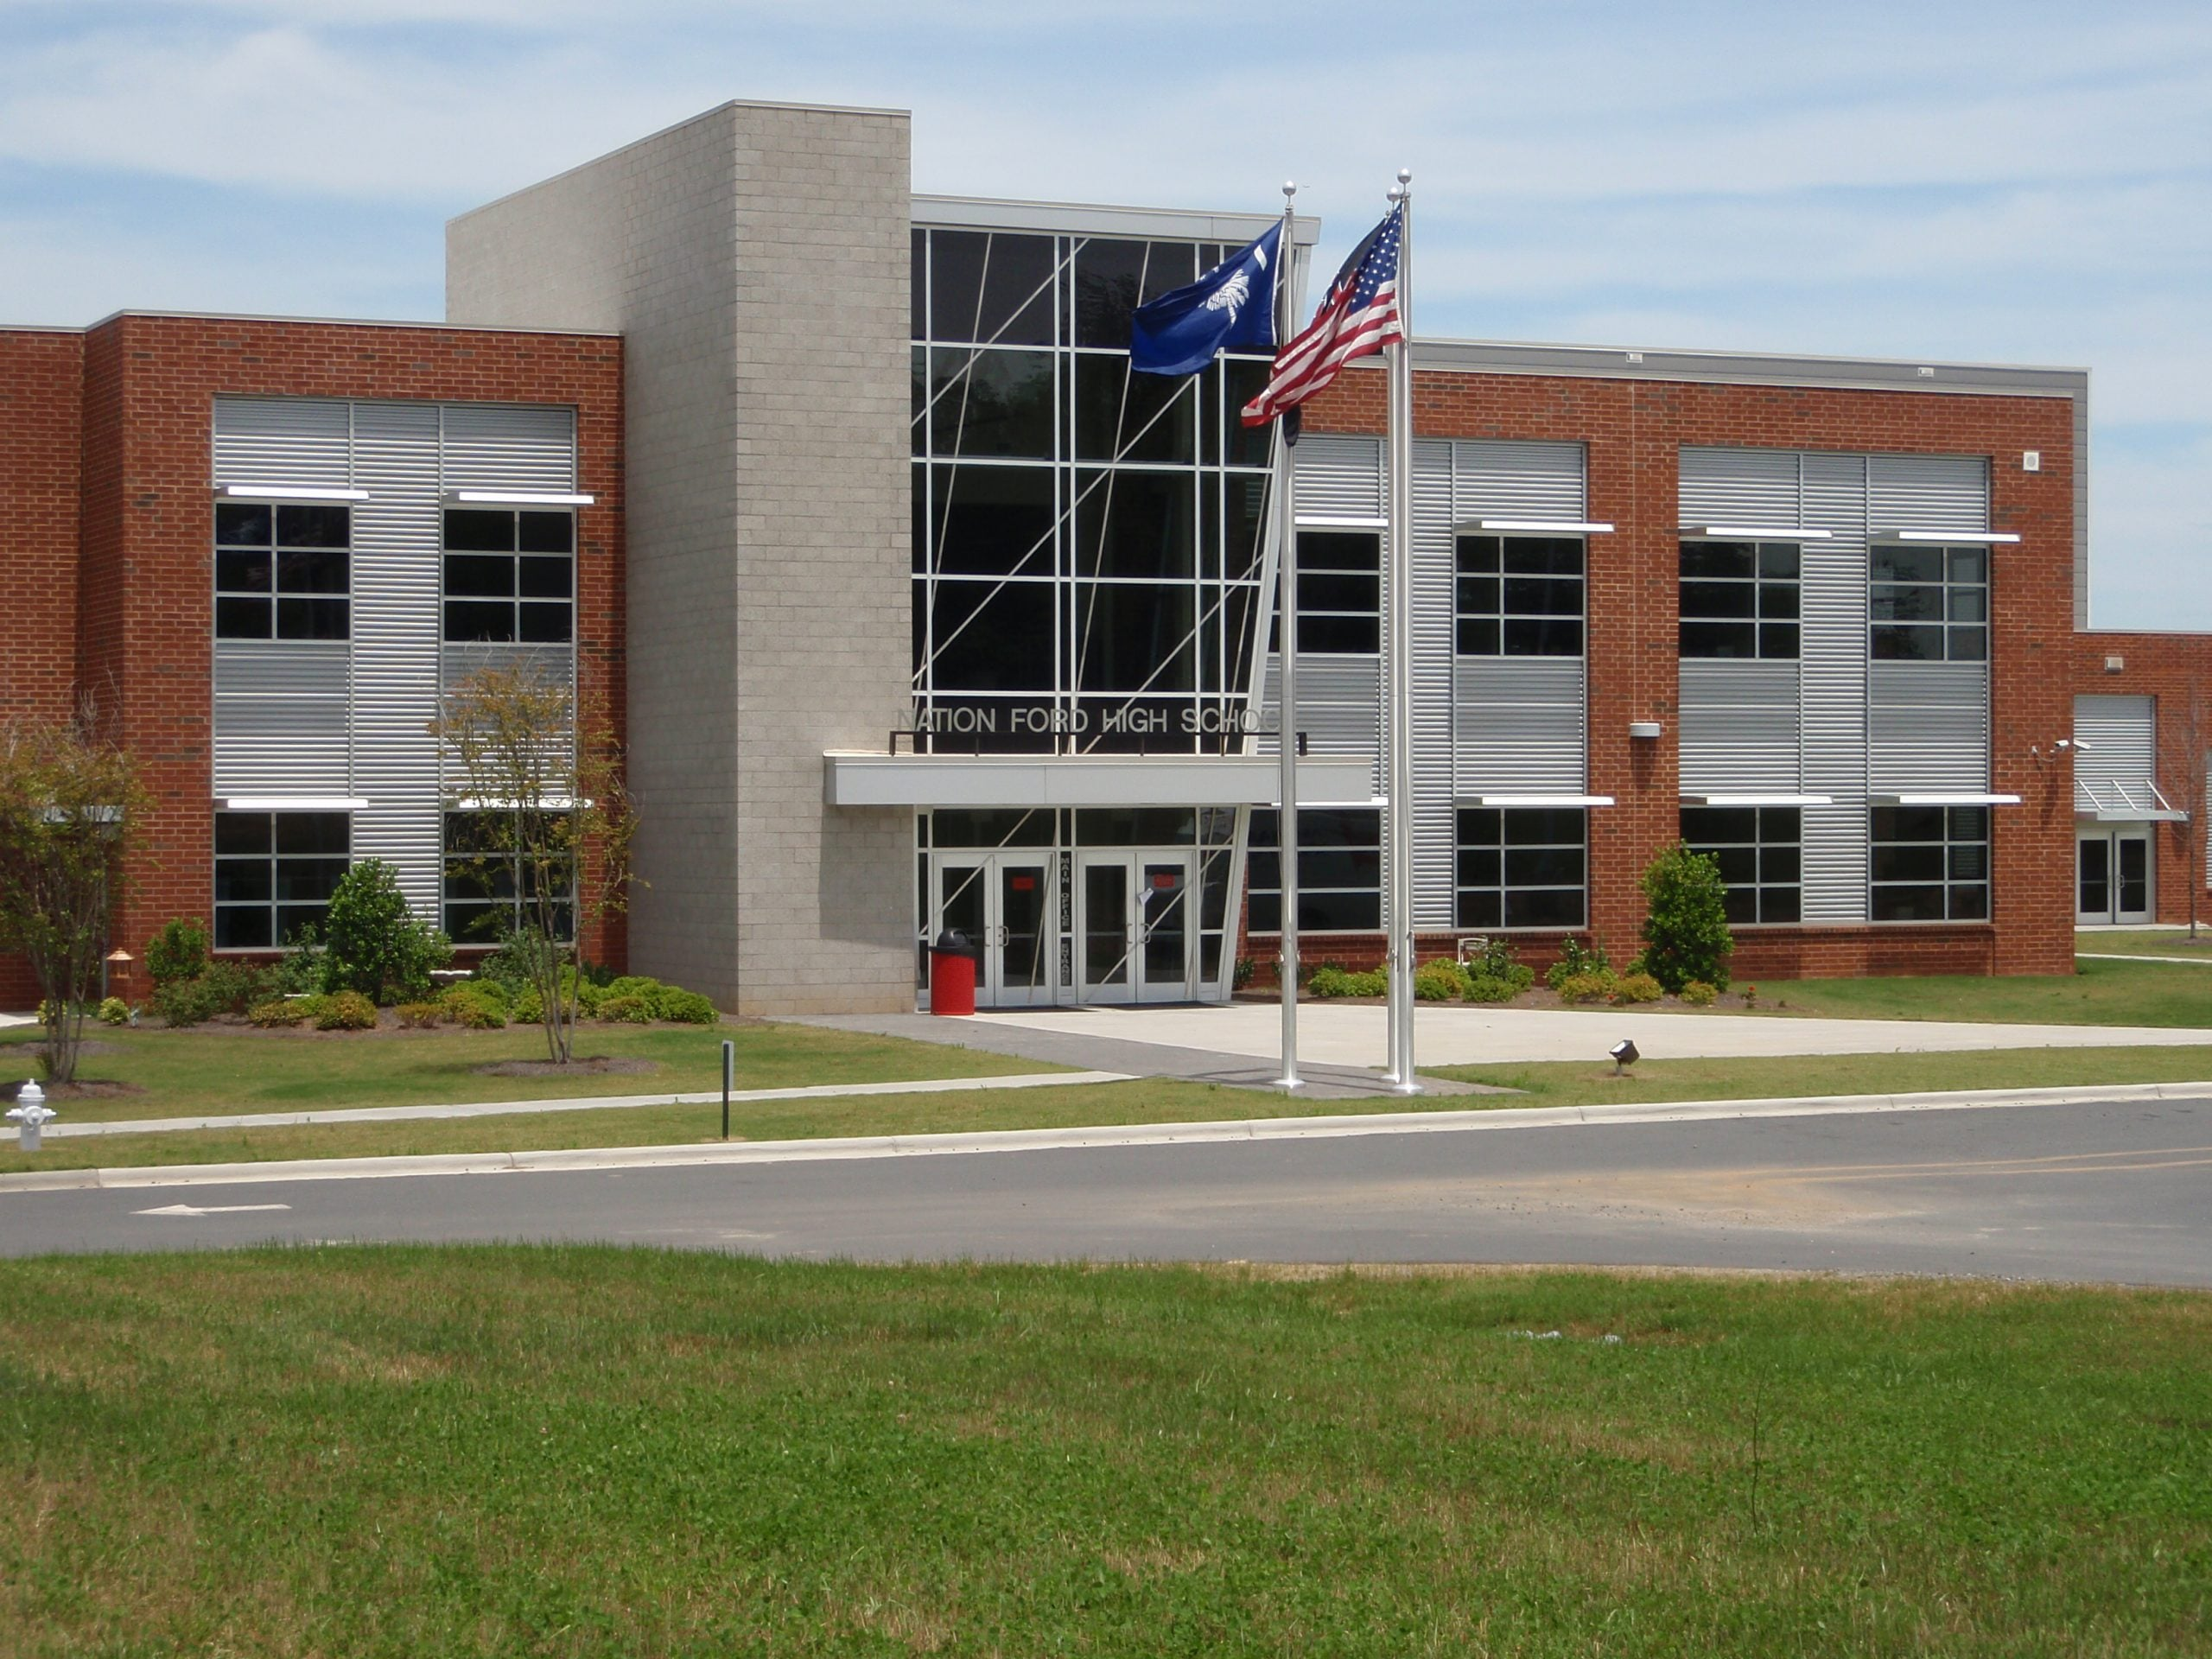 Nations Ford HS Hinson Electric Inc. Monroe NC